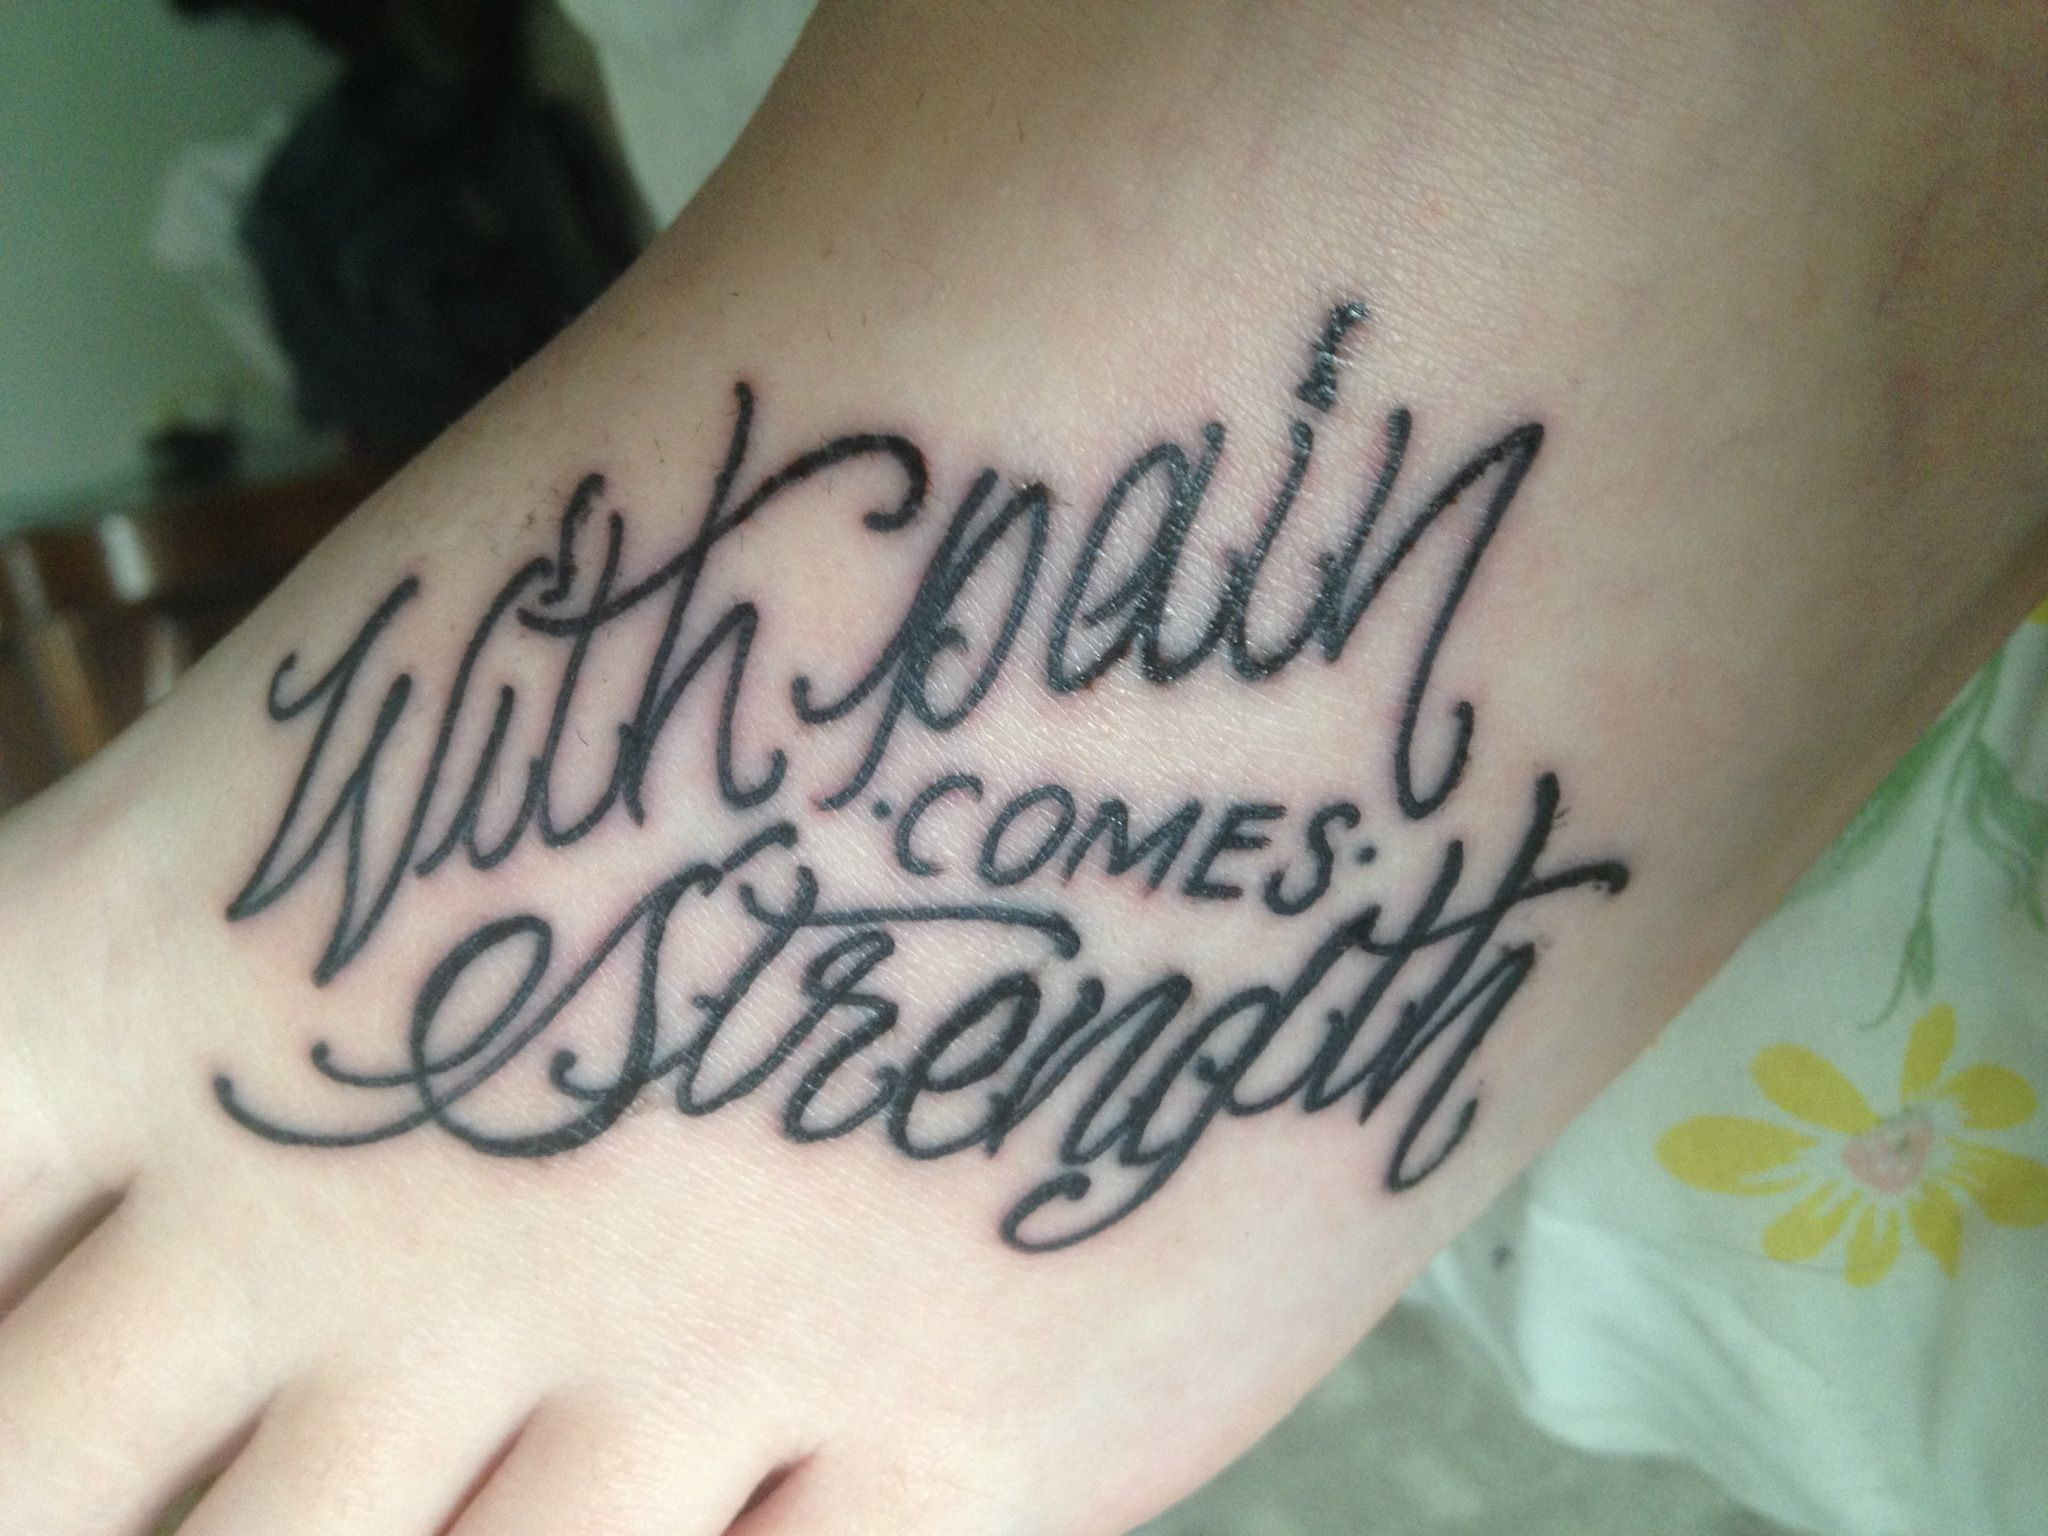 With Pain Comes Strength Tattoo Love 3 3 Tattoos Symbolic